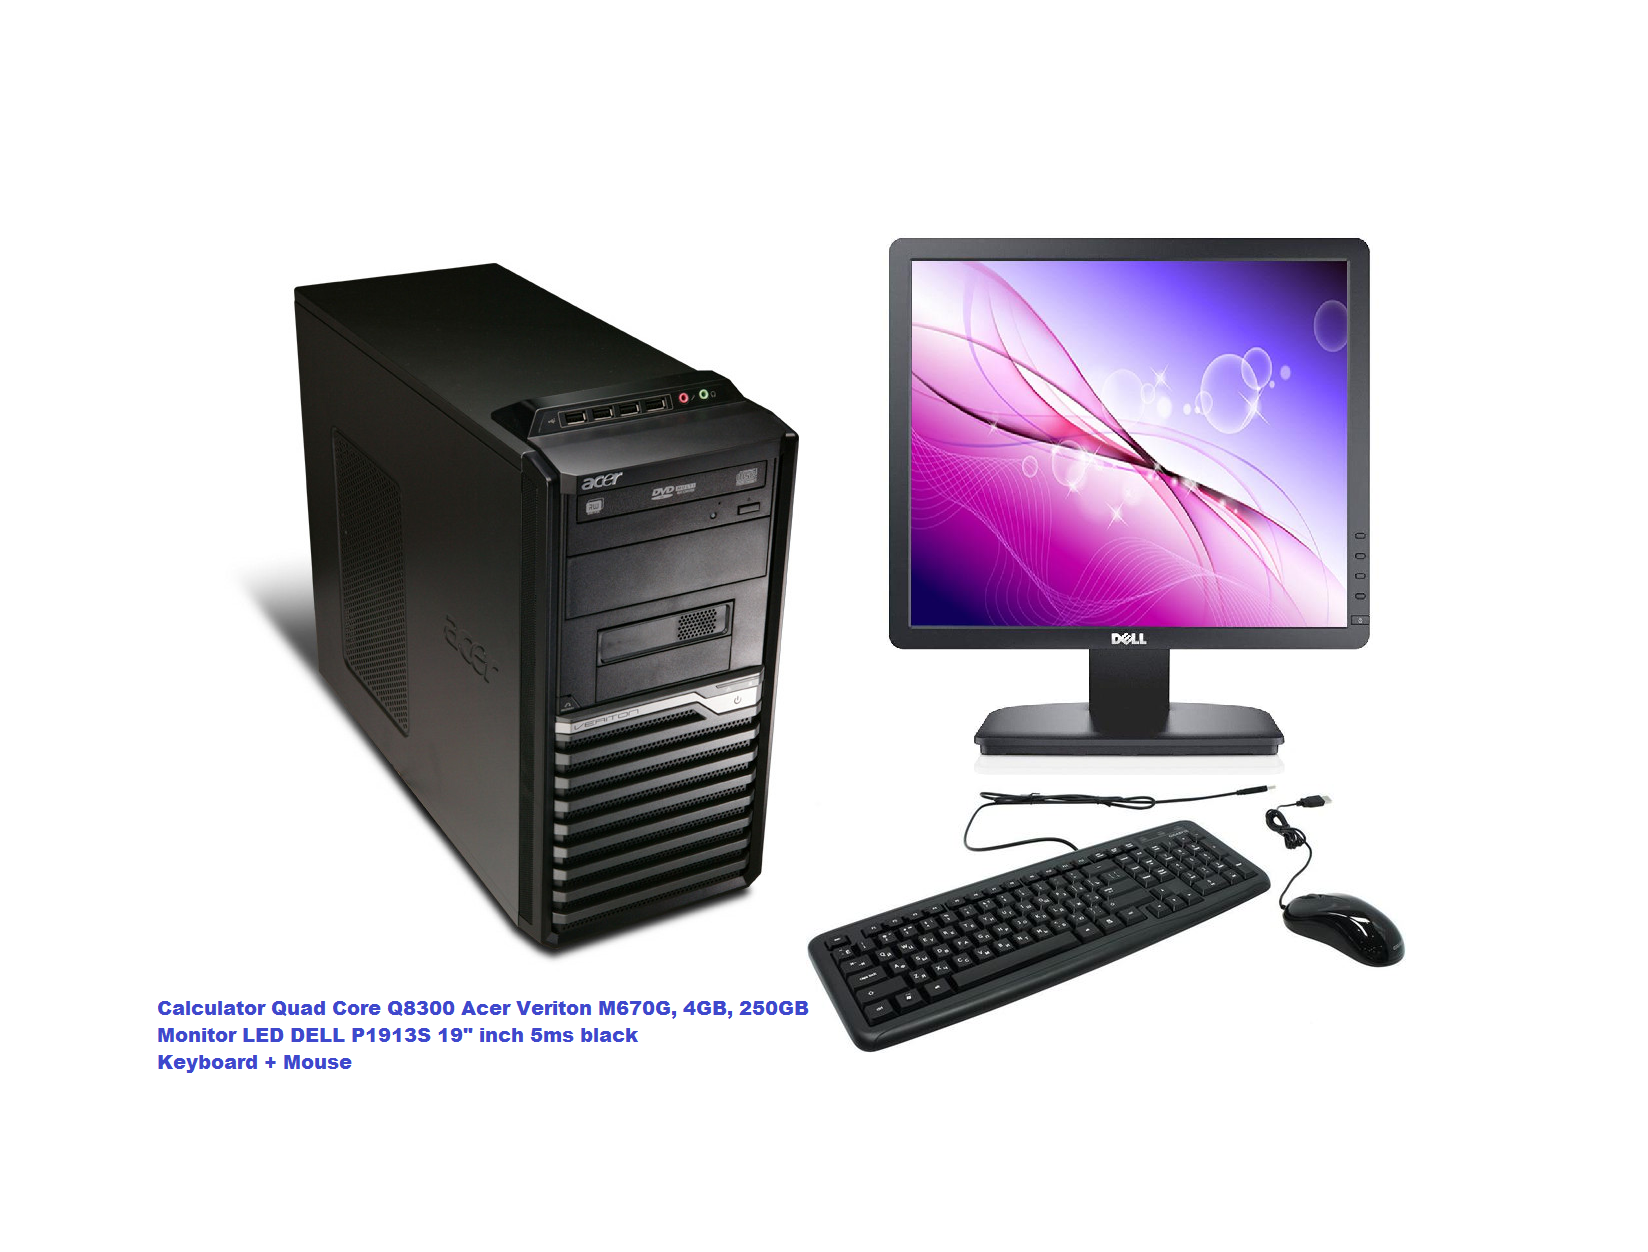 Acer Veriton M670G NVIDIA Display Drivers for Windows Download